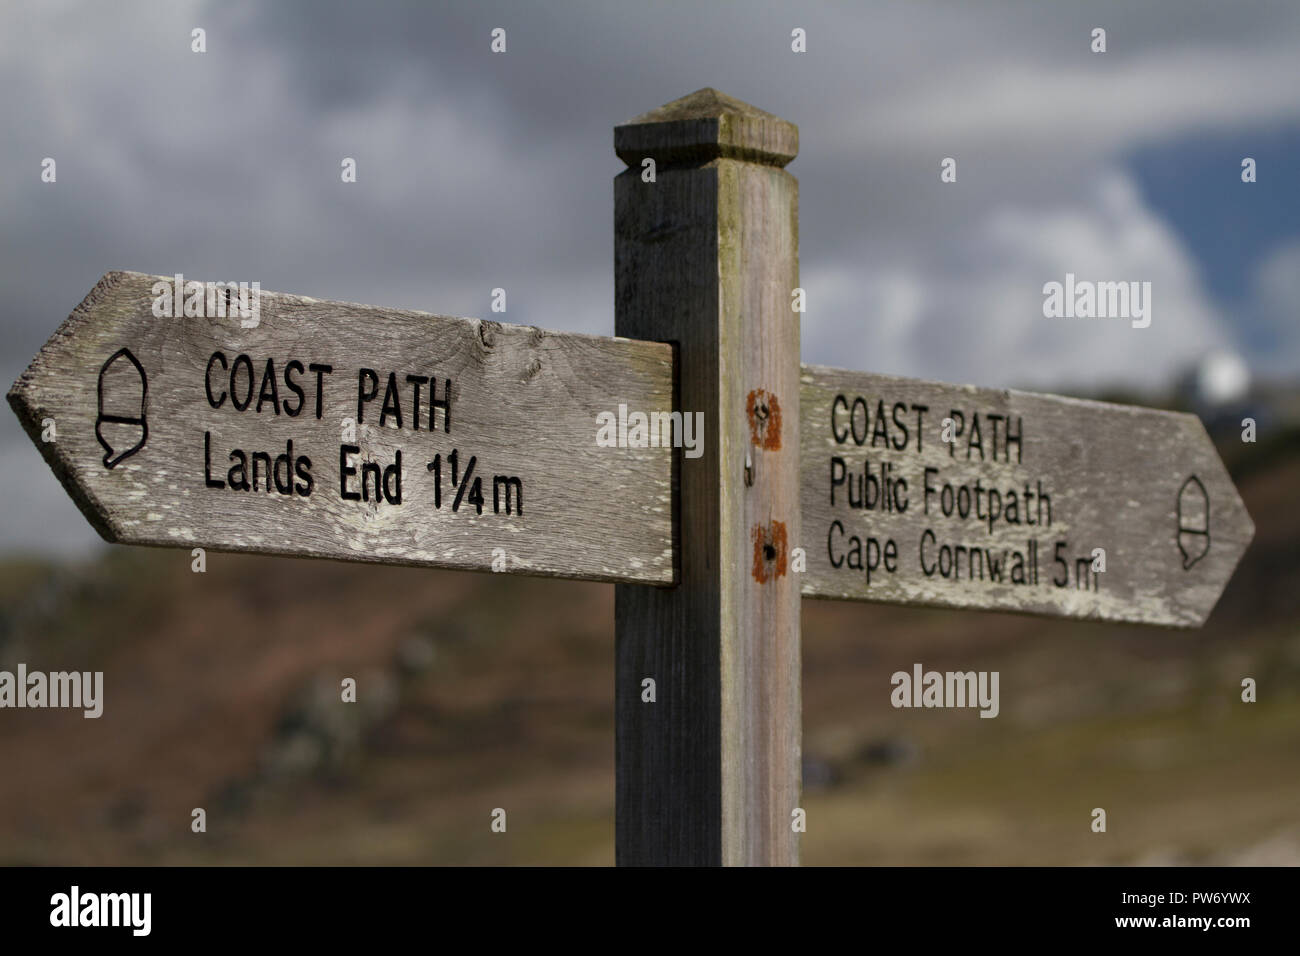 Direction sign on Coastal Path in Cornwall - Stock Image